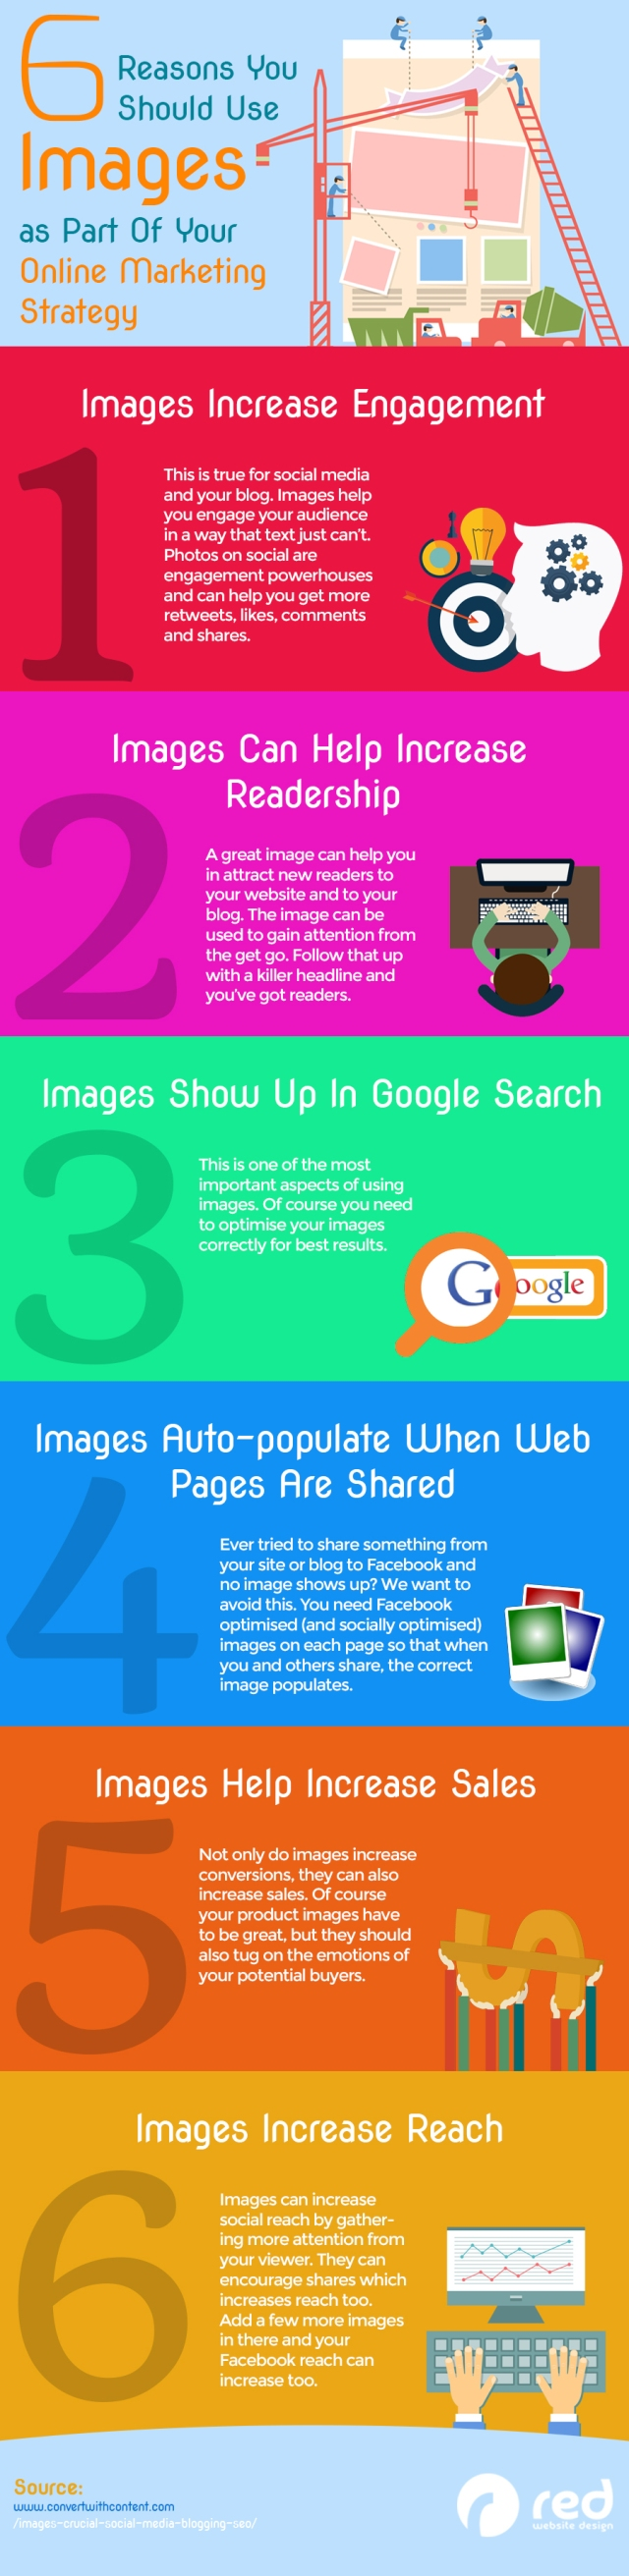 6 Reasons Images Should Be Part Of Your SEO and Social Media Strategy